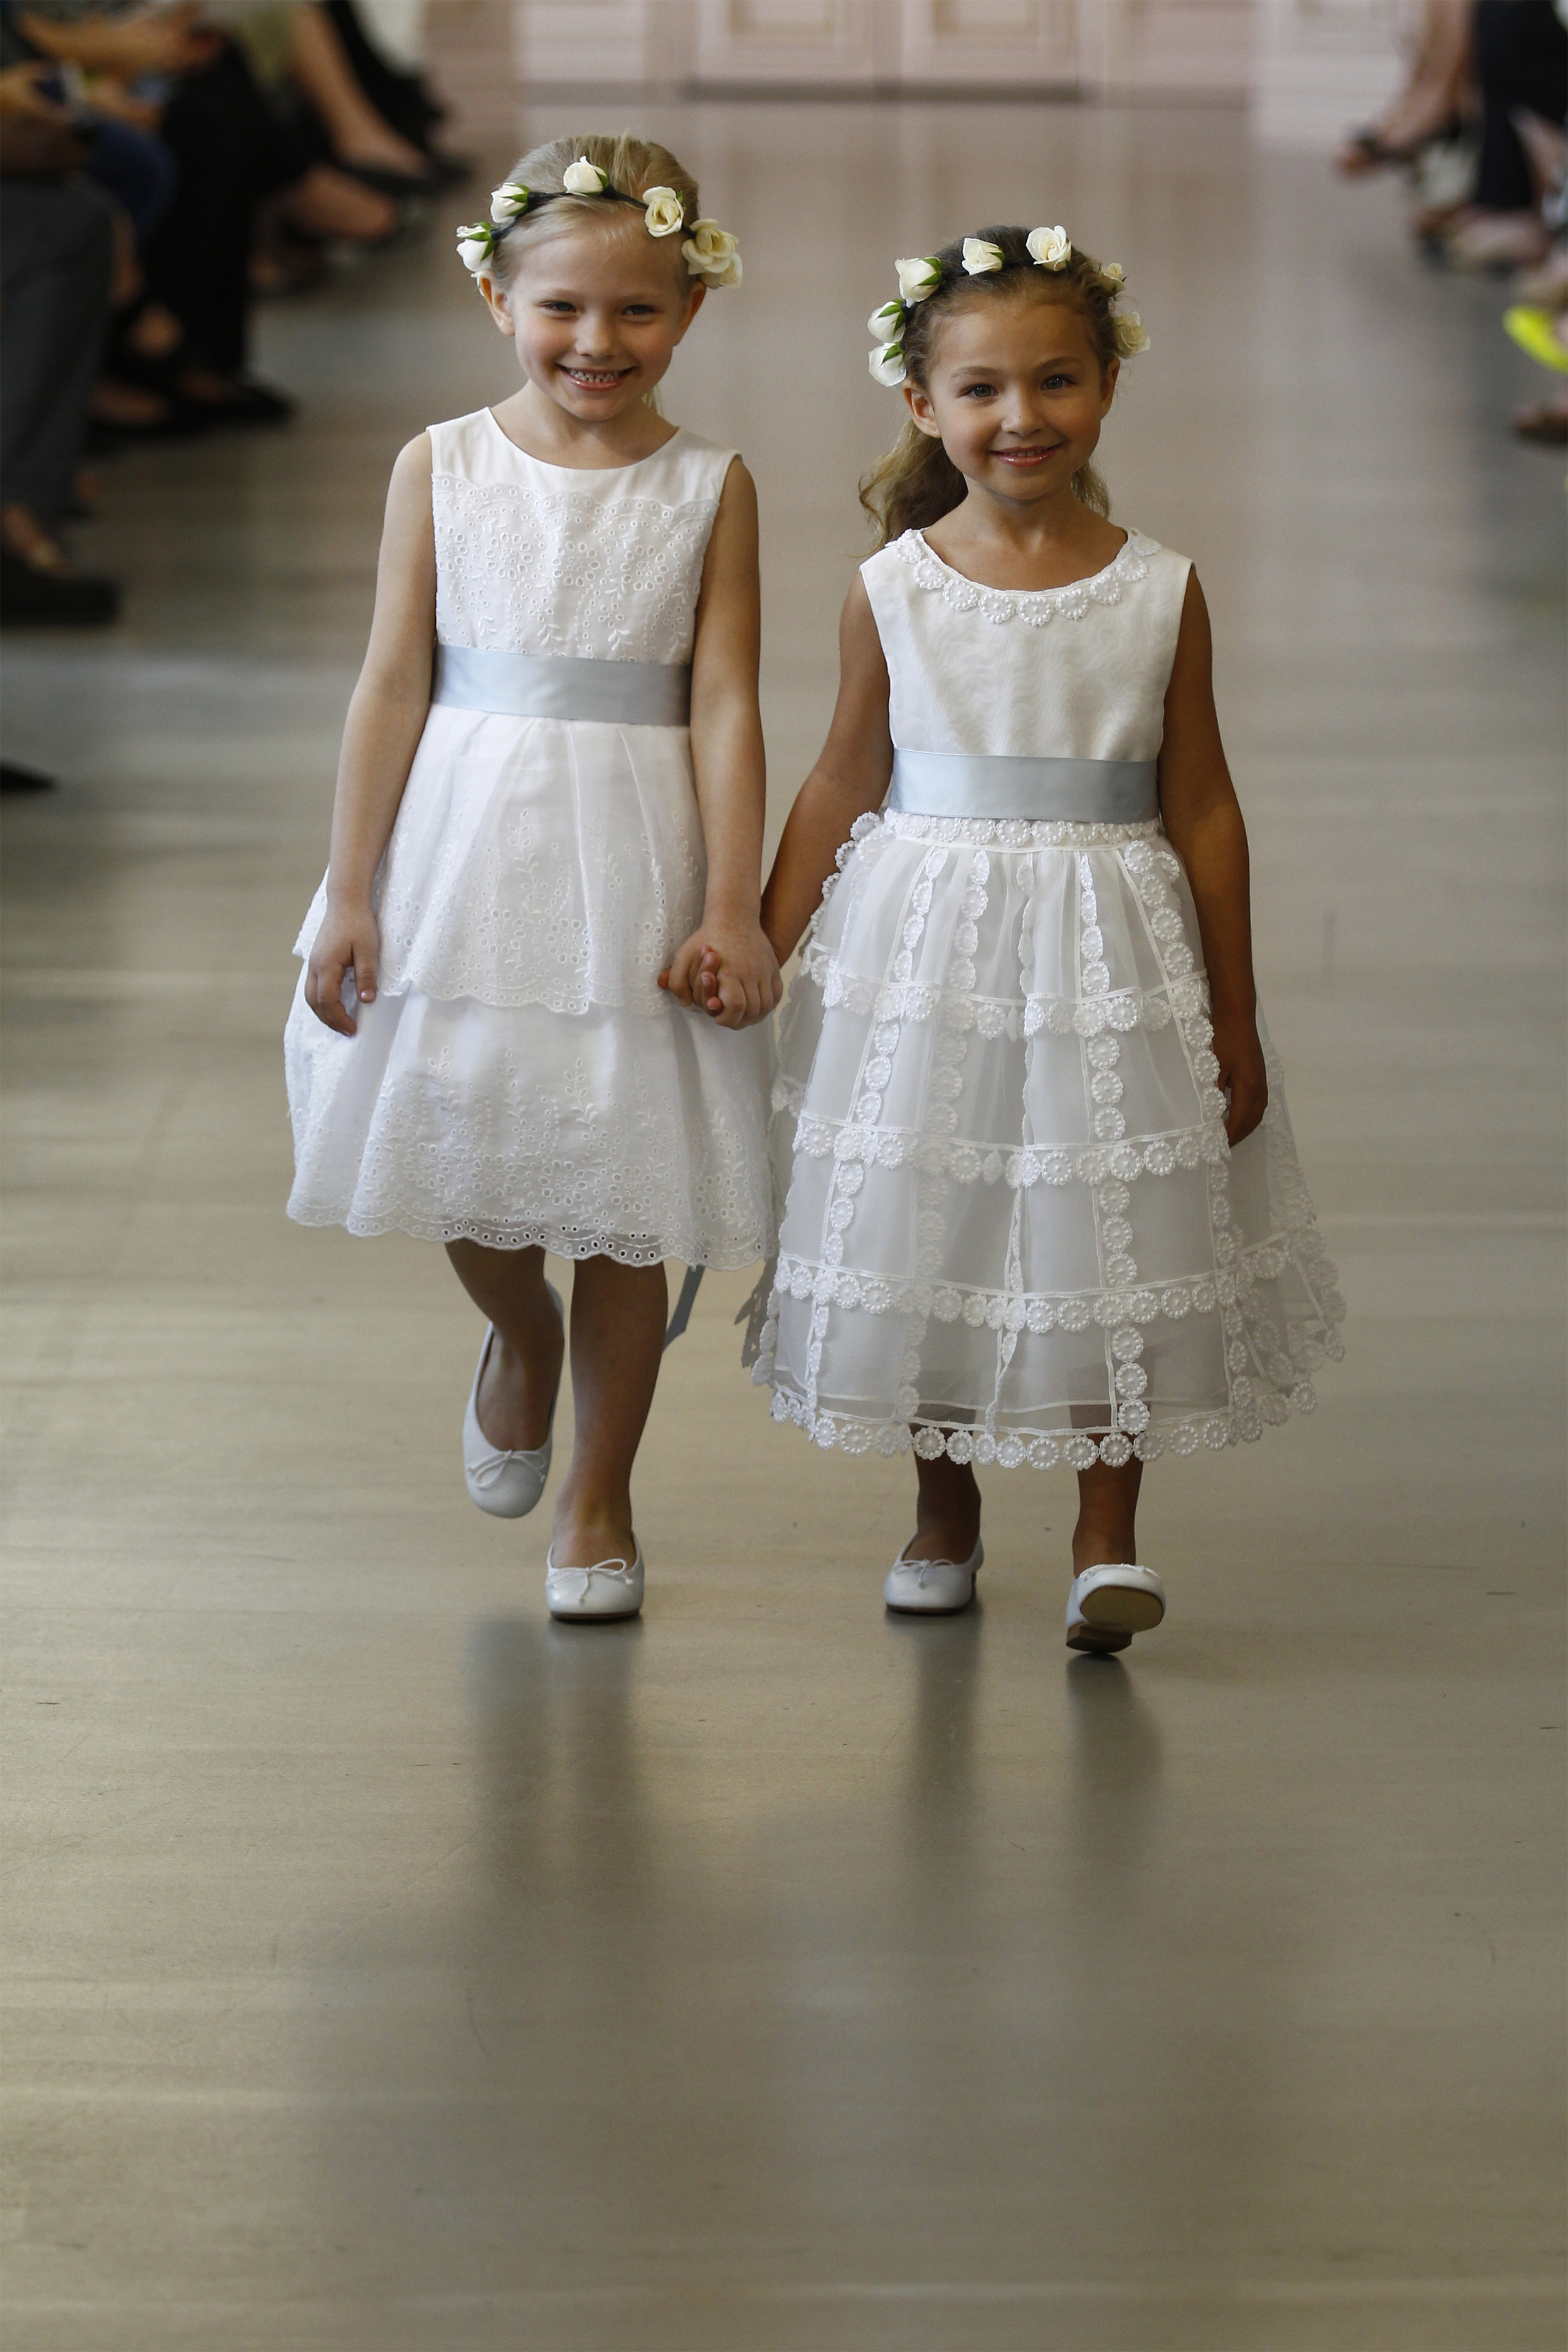 Matilda -White cotton eyelet flower girl dress with pale blue satin ribbon. White leather ballerina shoes.   Milena  -Ivory silk organza flower girl dress with dotted guipure and lace trim. White leather ballerina shoes.